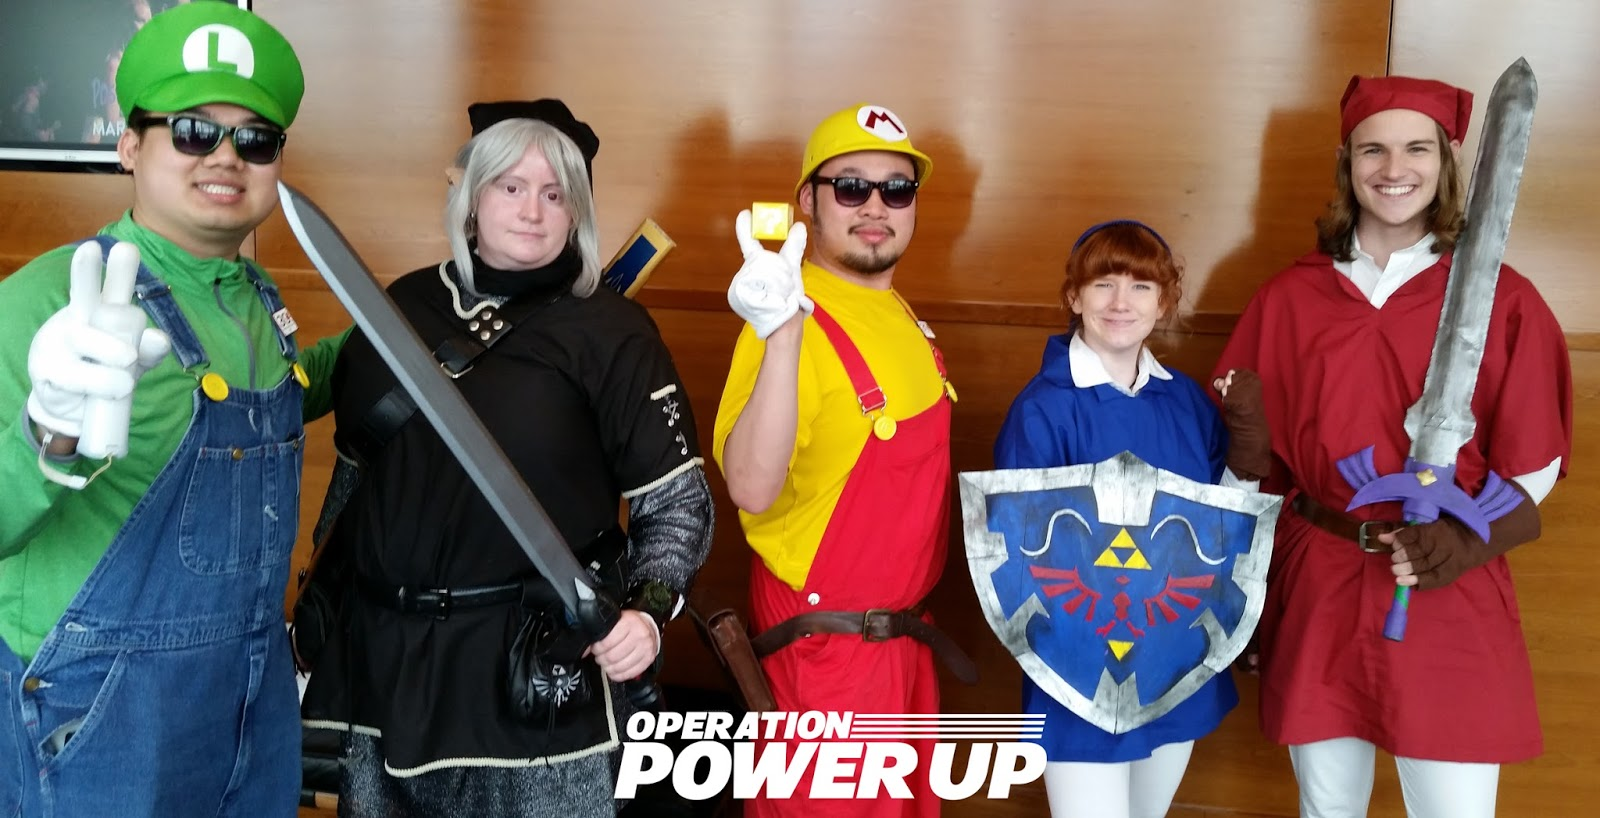 Operation power up cosplayers at the theatre thecheapjerseys Images